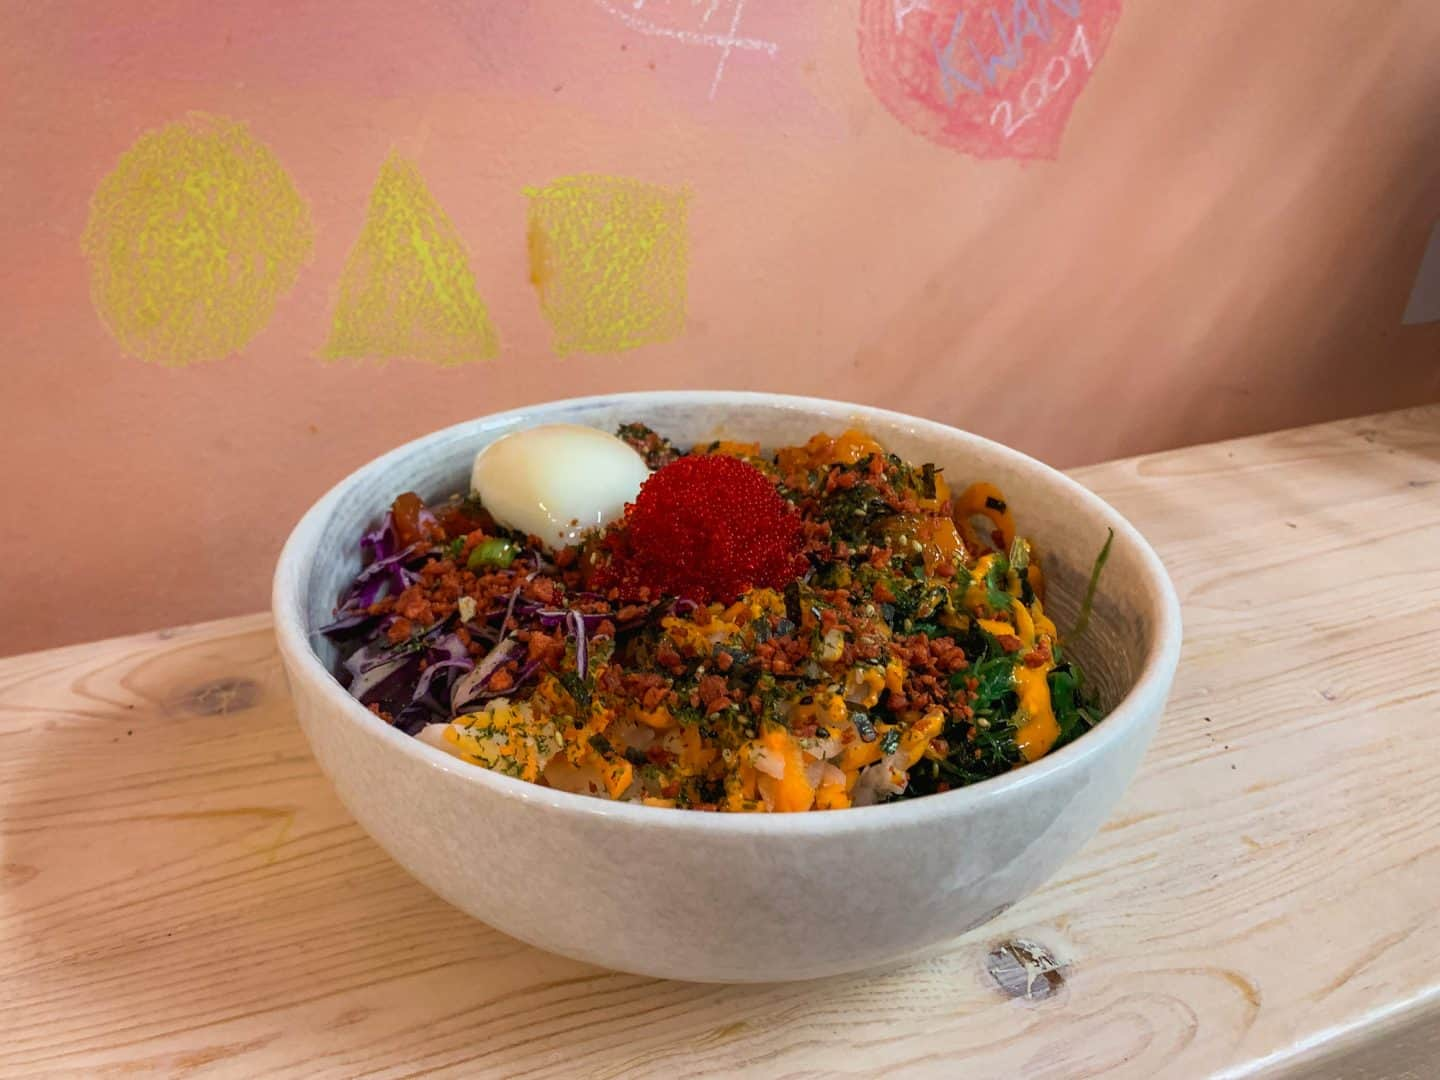 Pokey Okey offers some of the best poké in Vancouver.